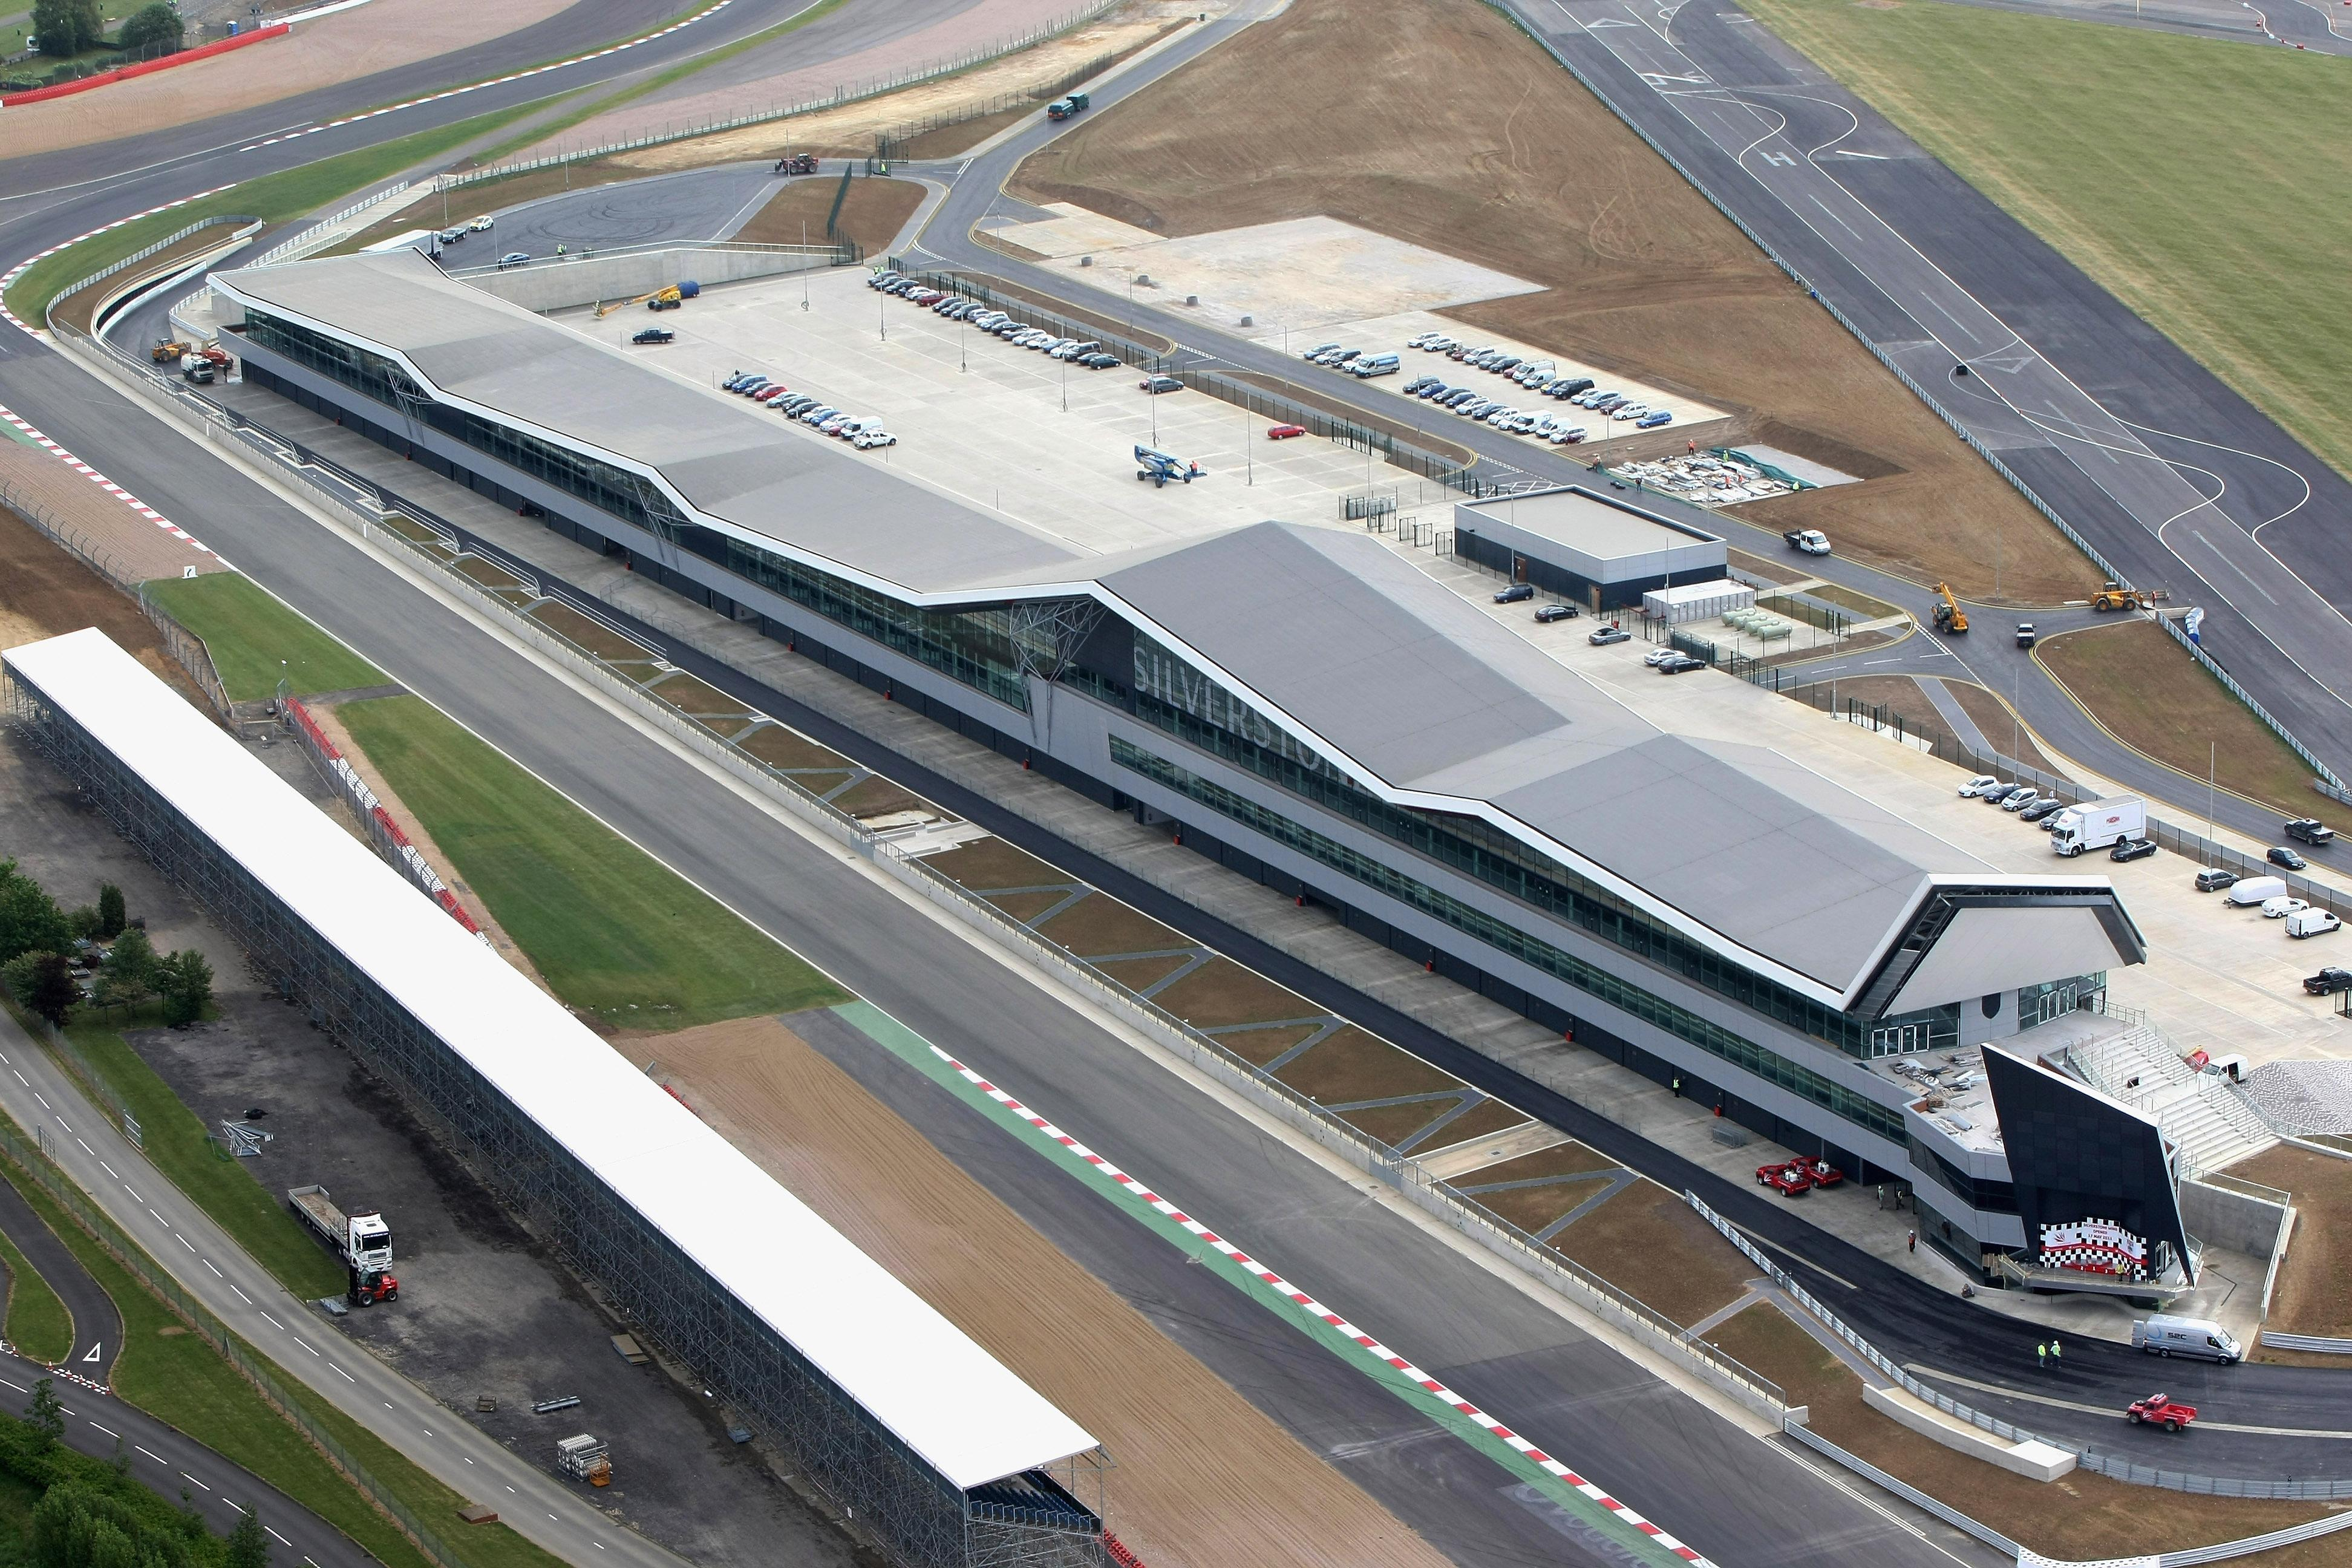 The British Grand Prix is one of the biggest events in the sporting calendar